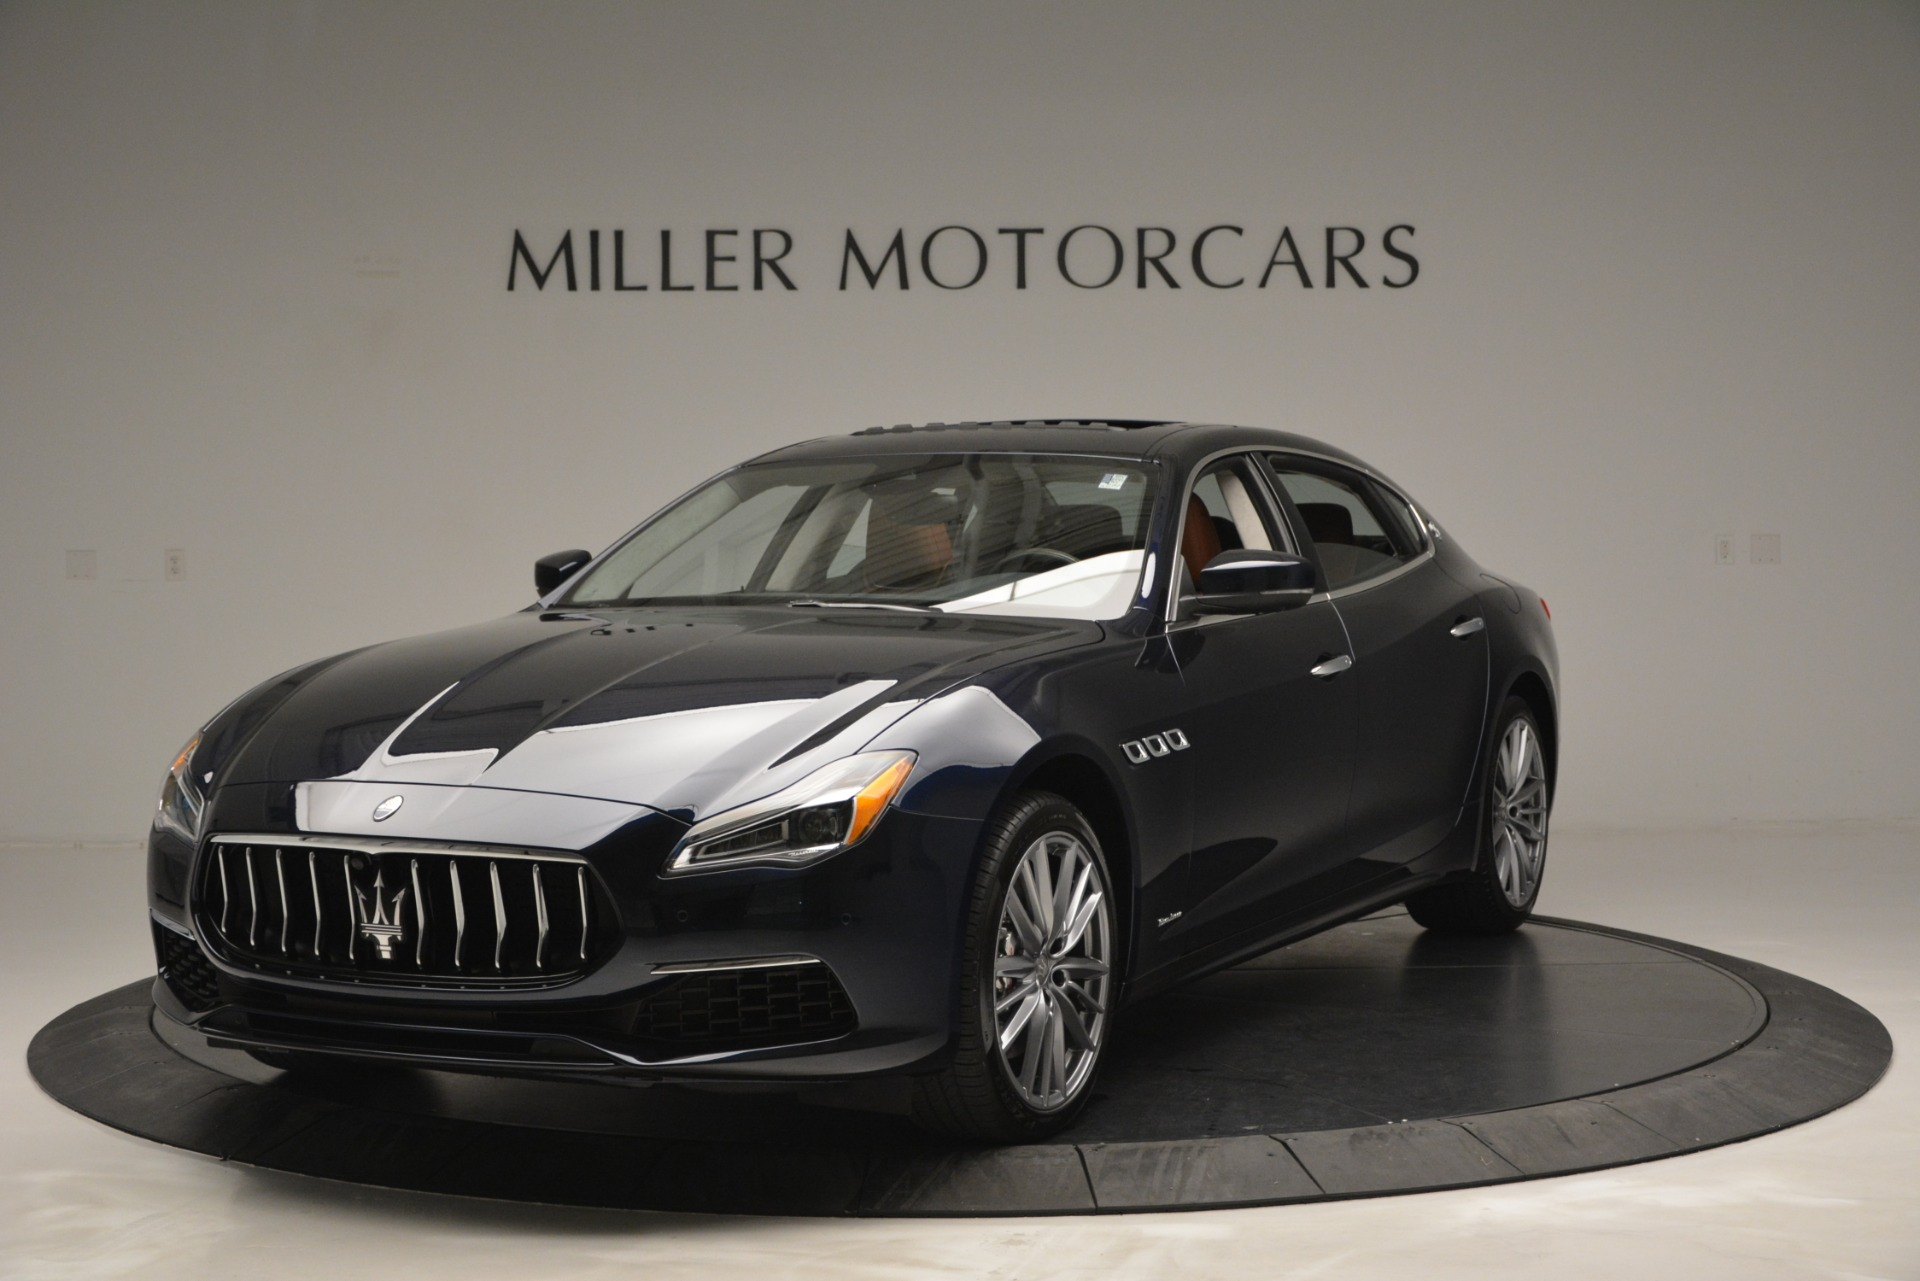 New 2019 Maserati Quattroporte S Q4 GranLusso Edizione Nobile for sale Sold at McLaren Greenwich in Greenwich CT 06830 1